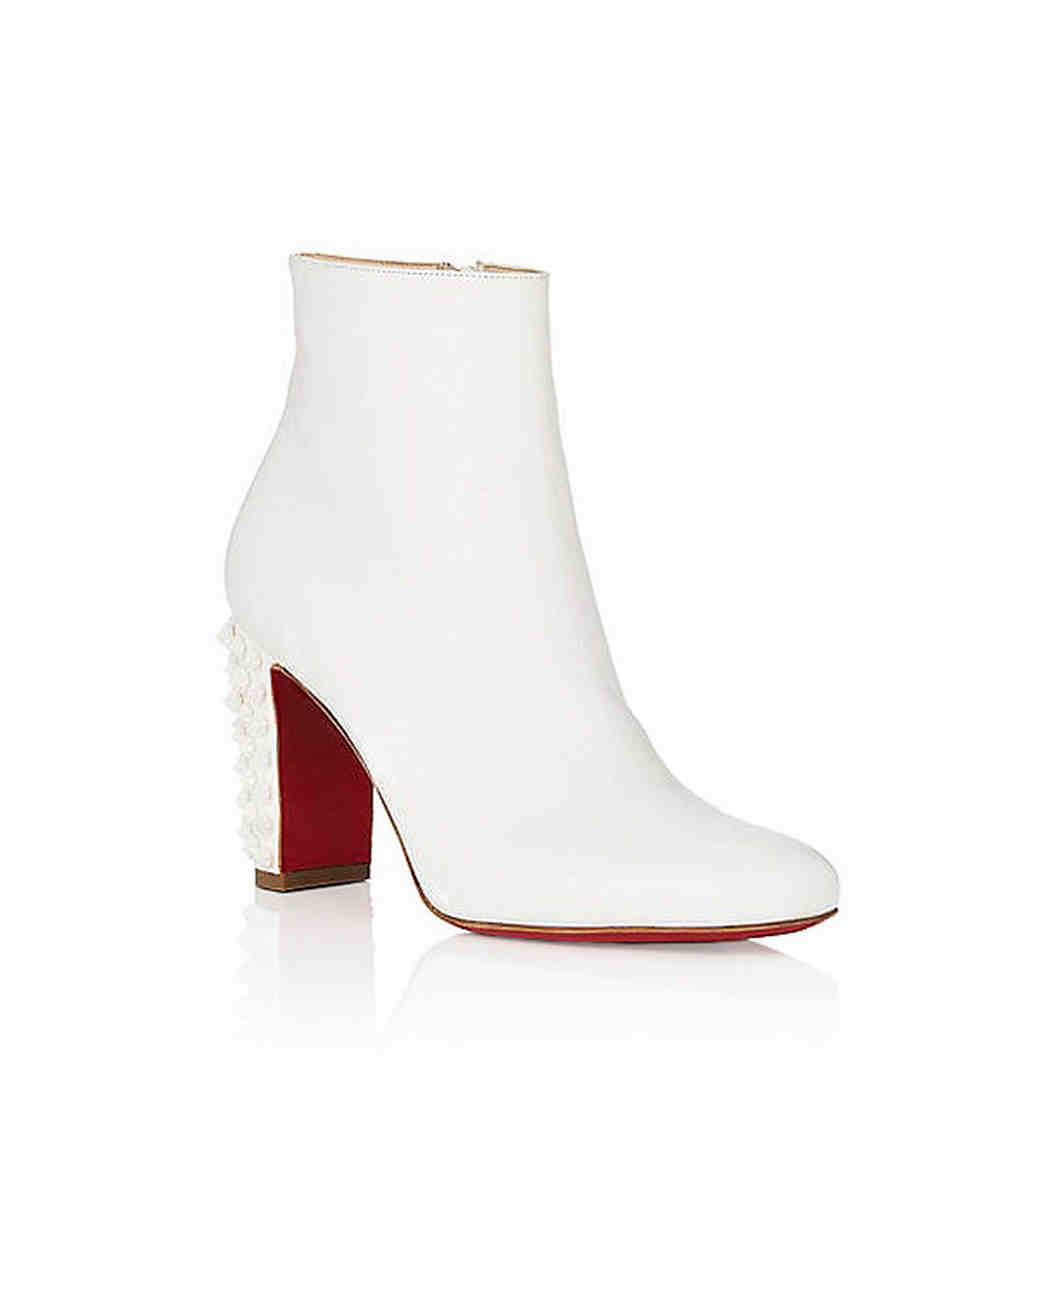 white bridal booties christian louboutin suzi ankle boots with red bottoms